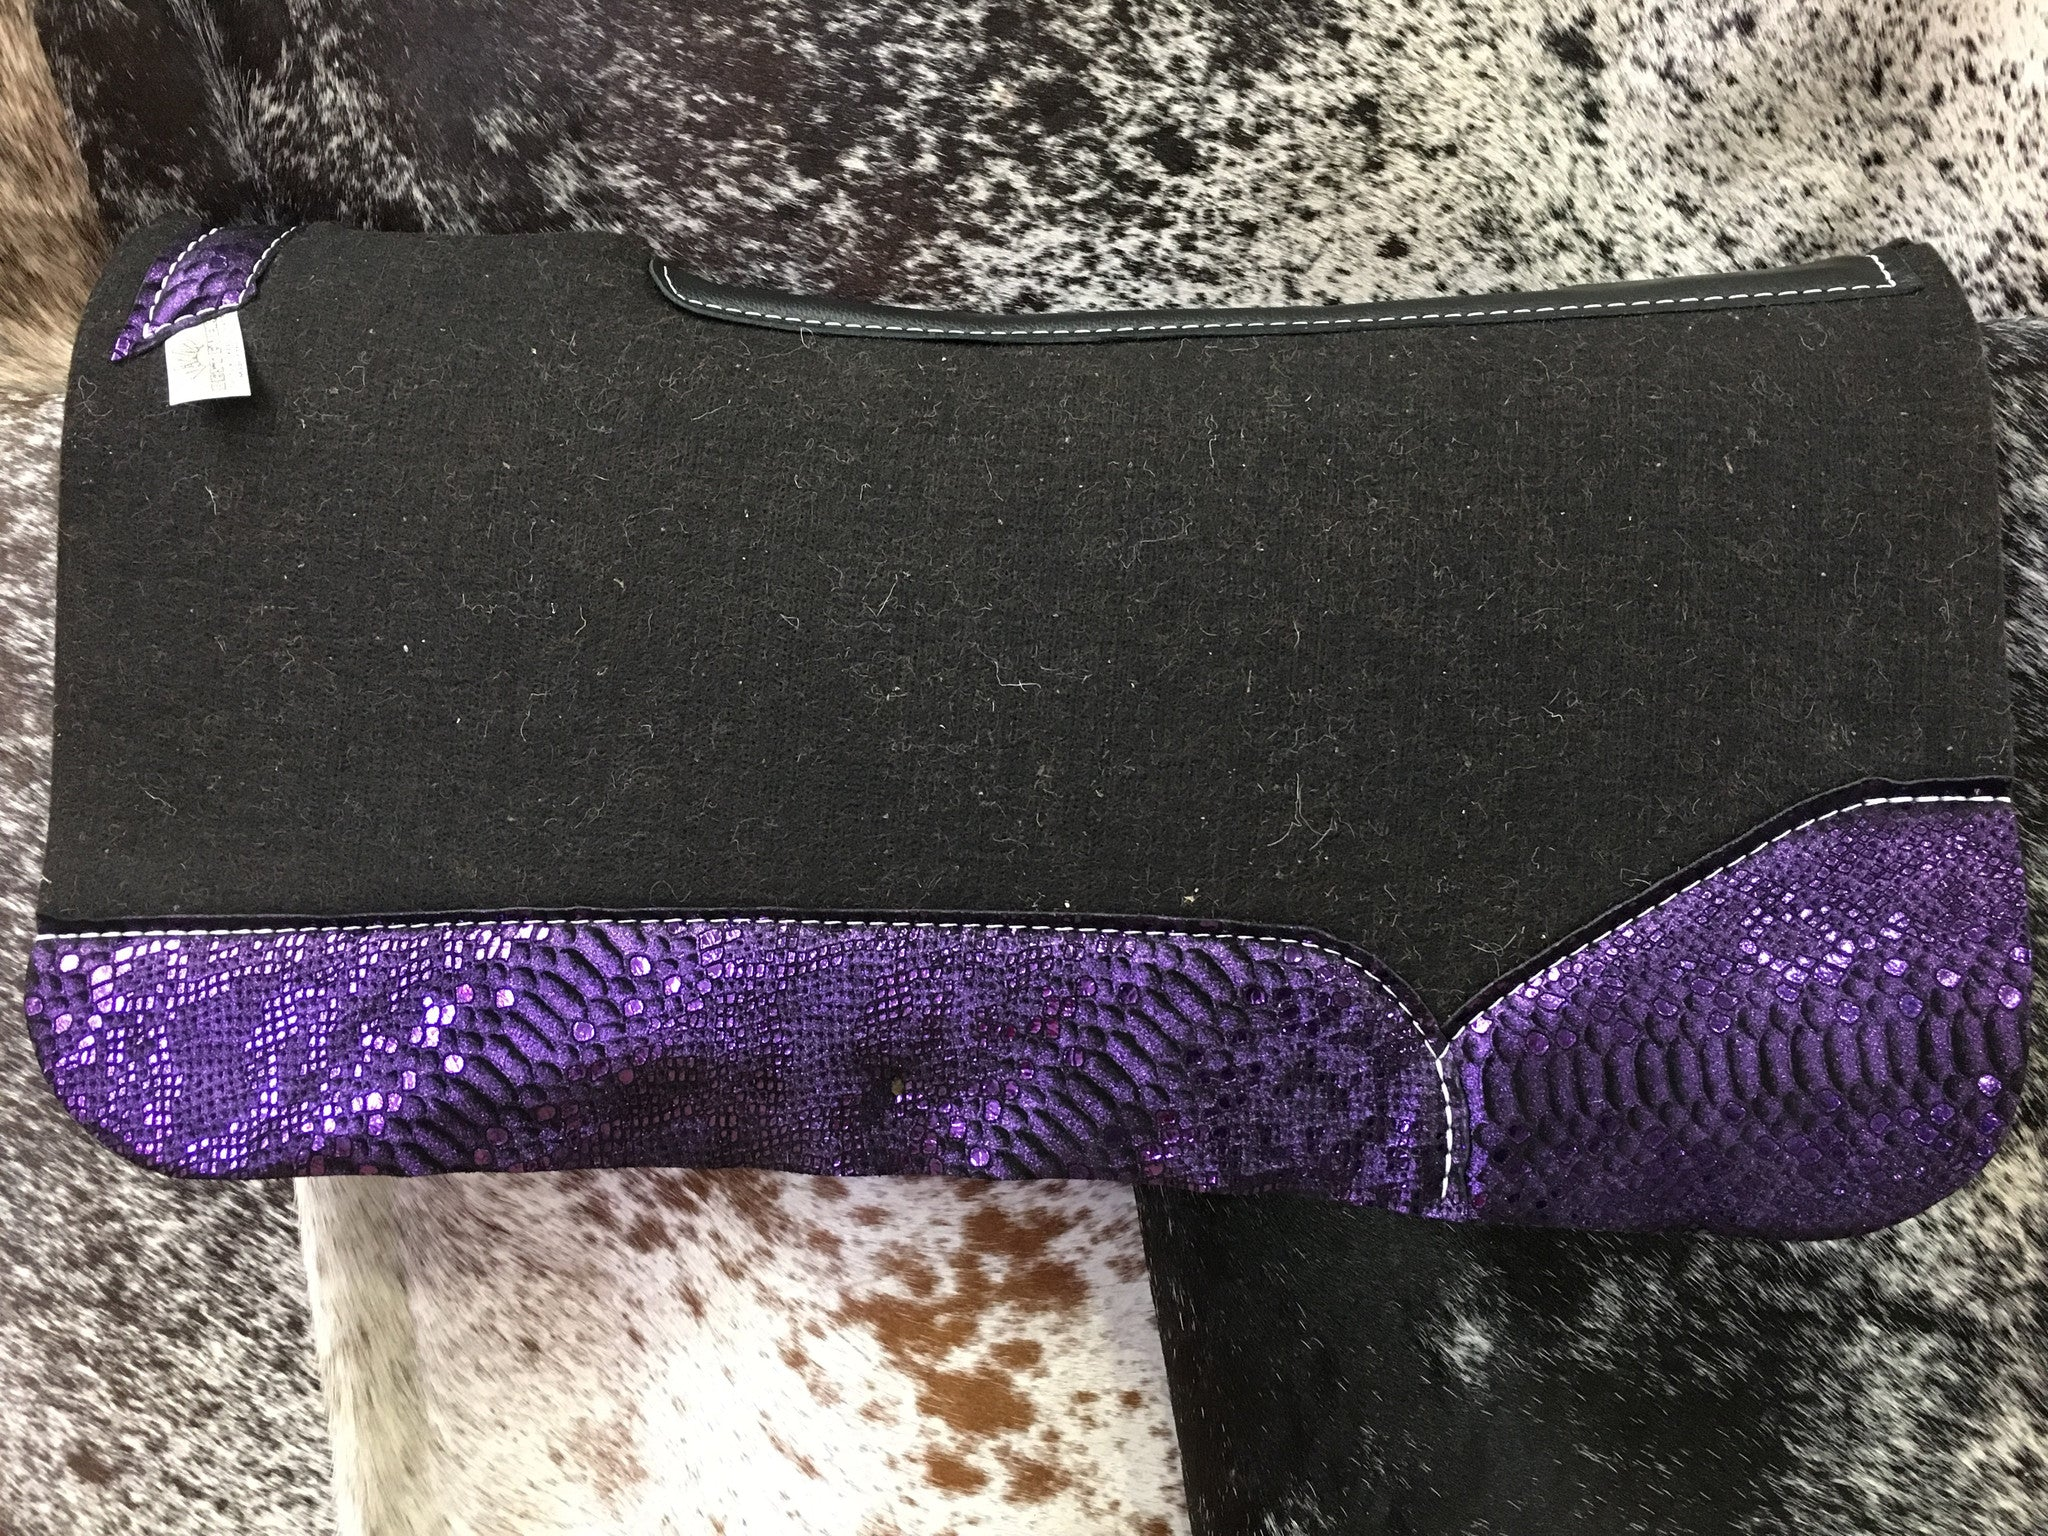 Best ever saddle pad with purple mystic wear leathers